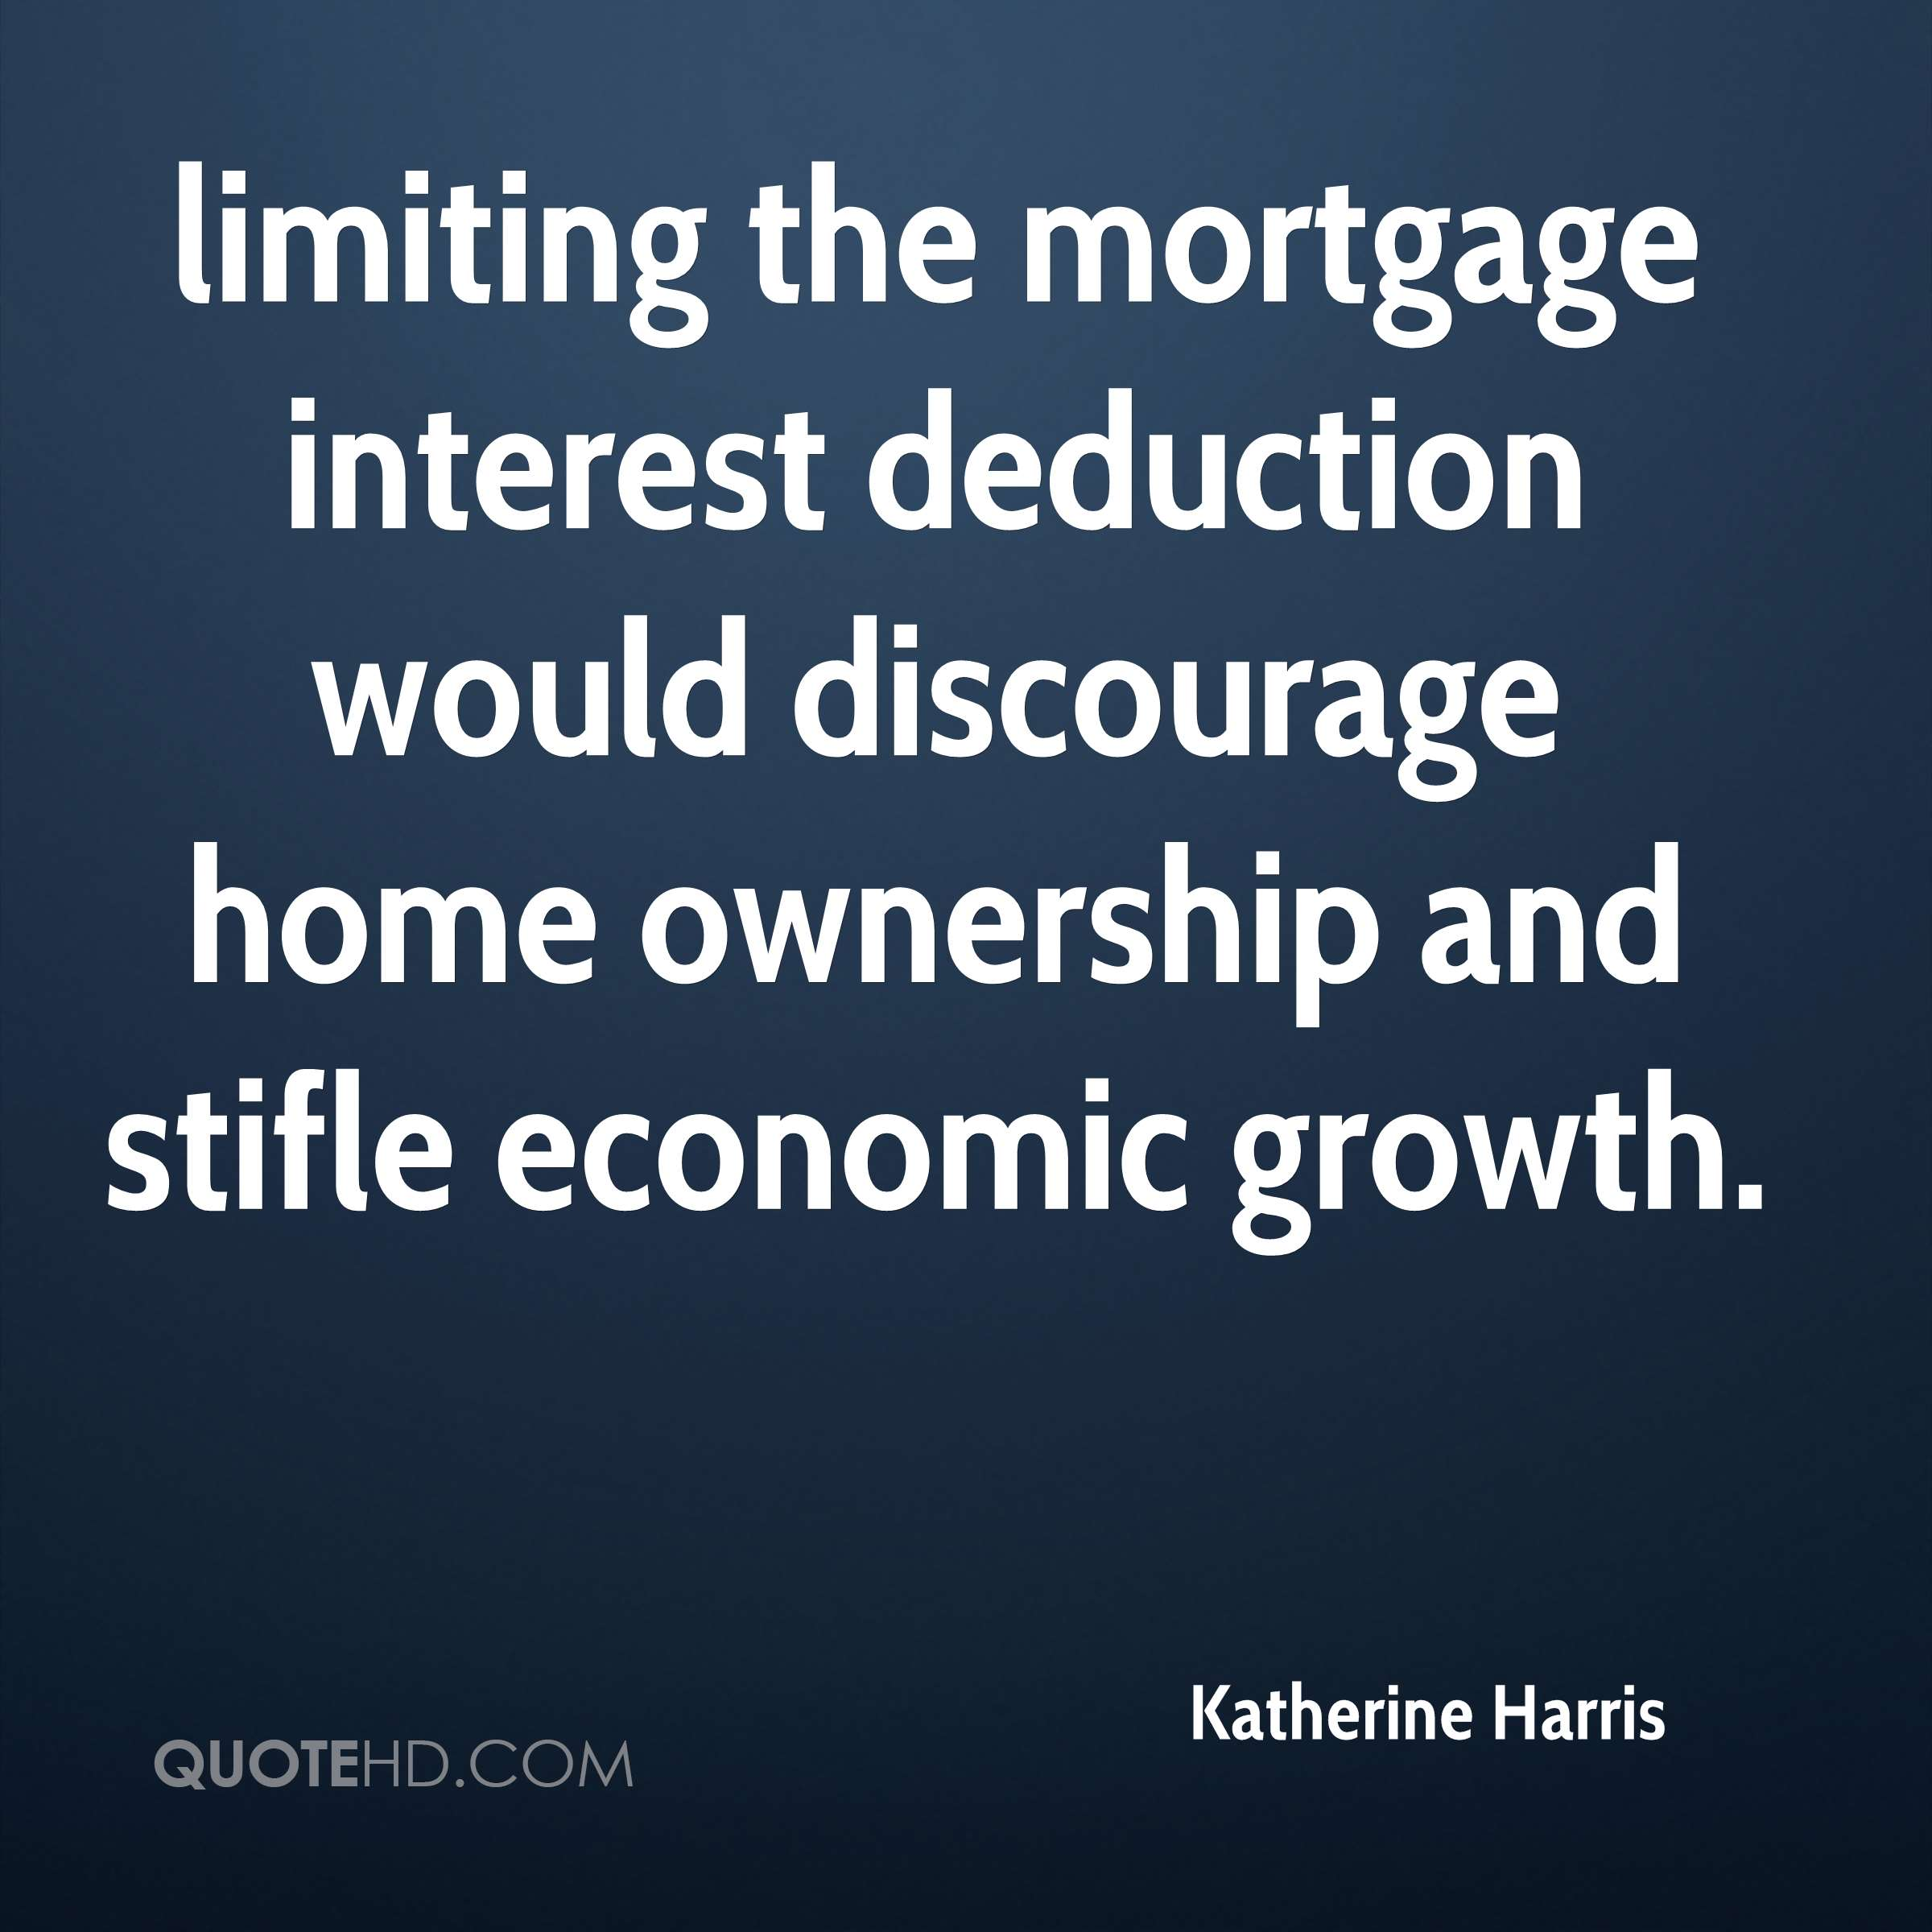 limiting the mortgage interest deduction would discourage home ownership and stifle economic growth.